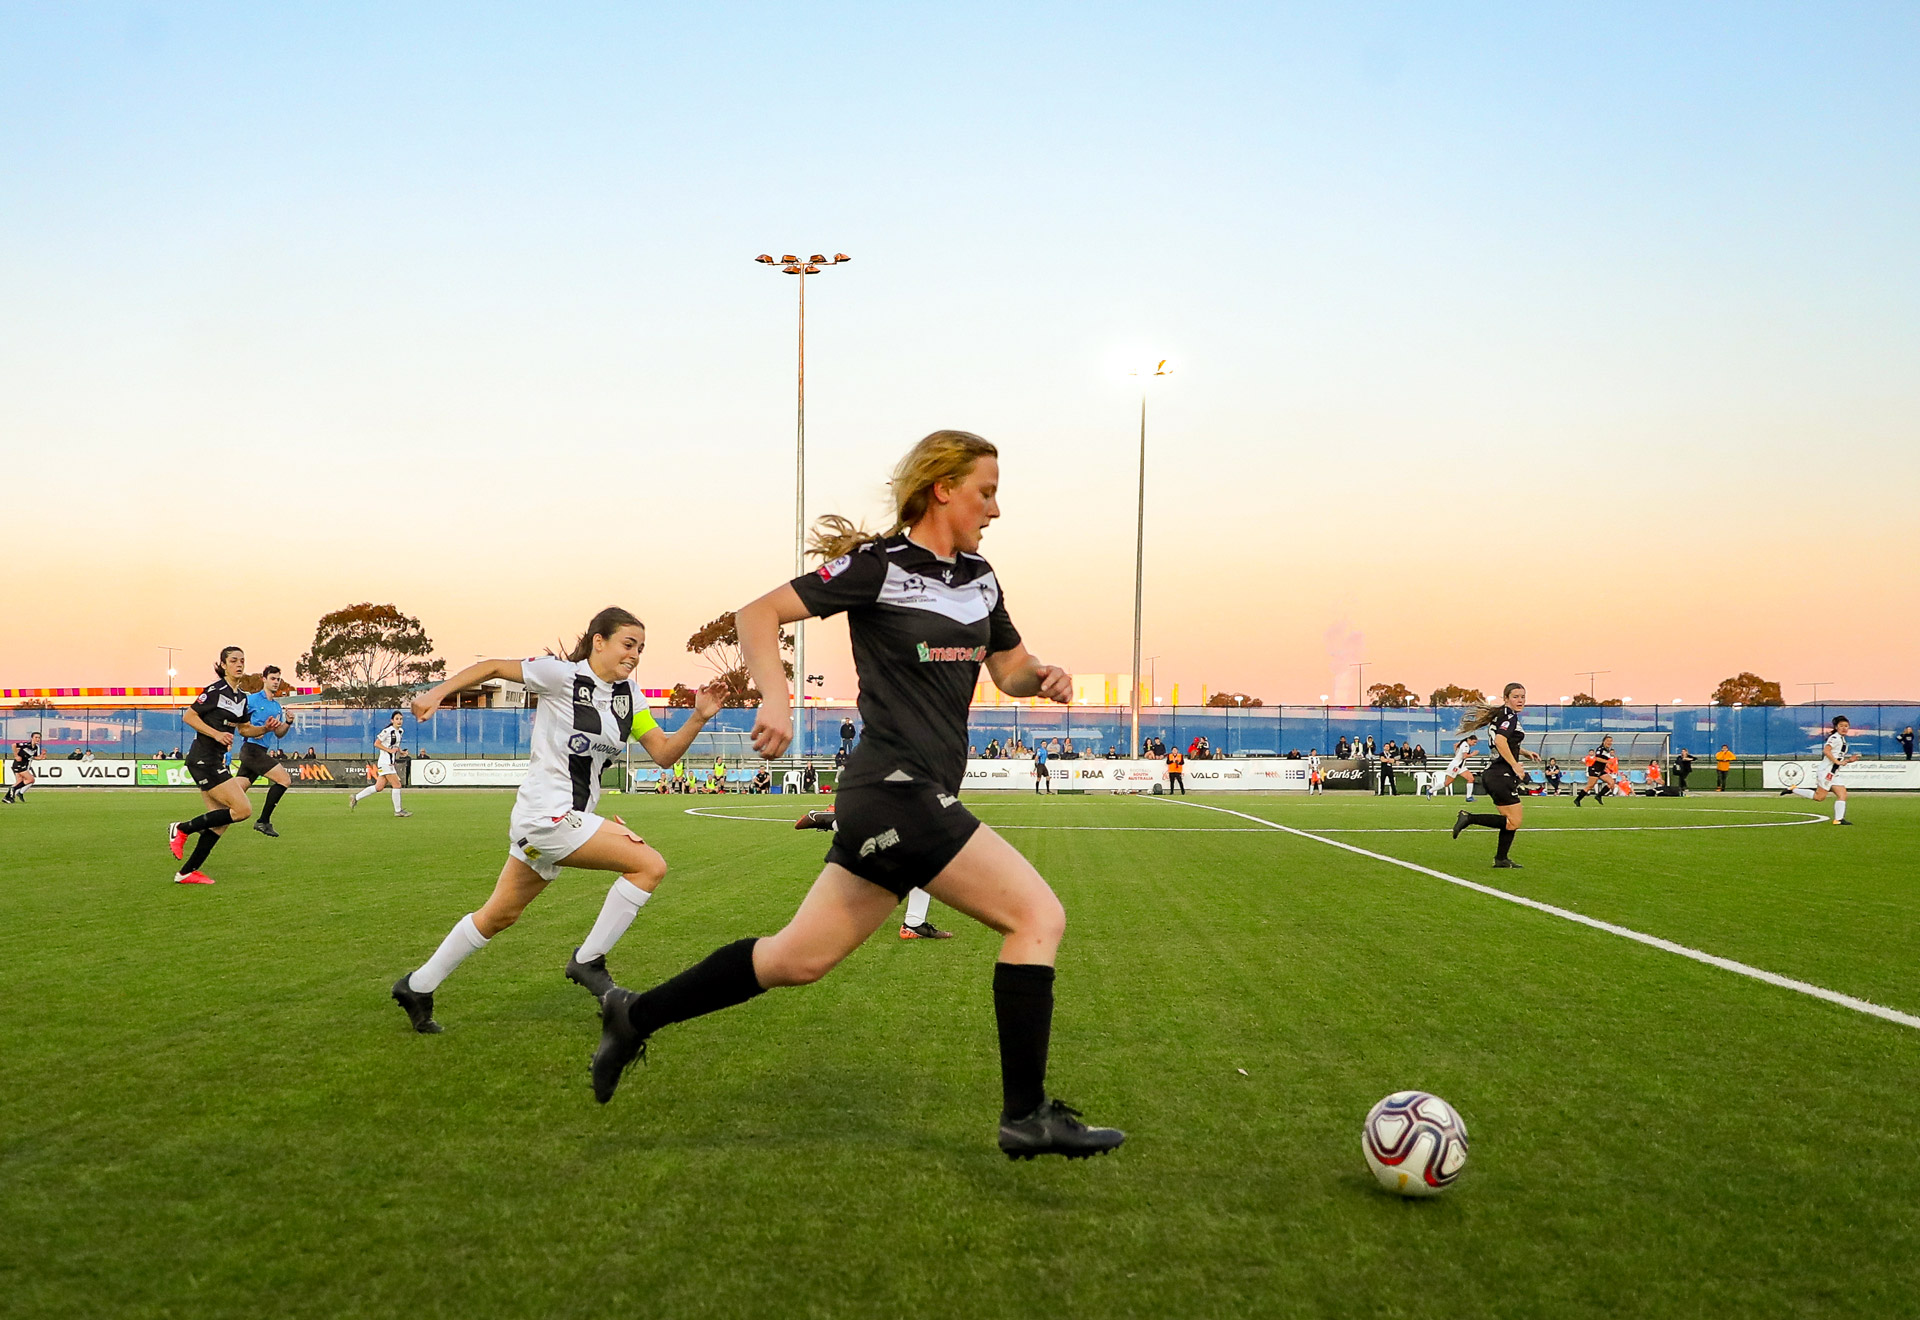 WNPL Reserves grand final win - Image by 8zerokms